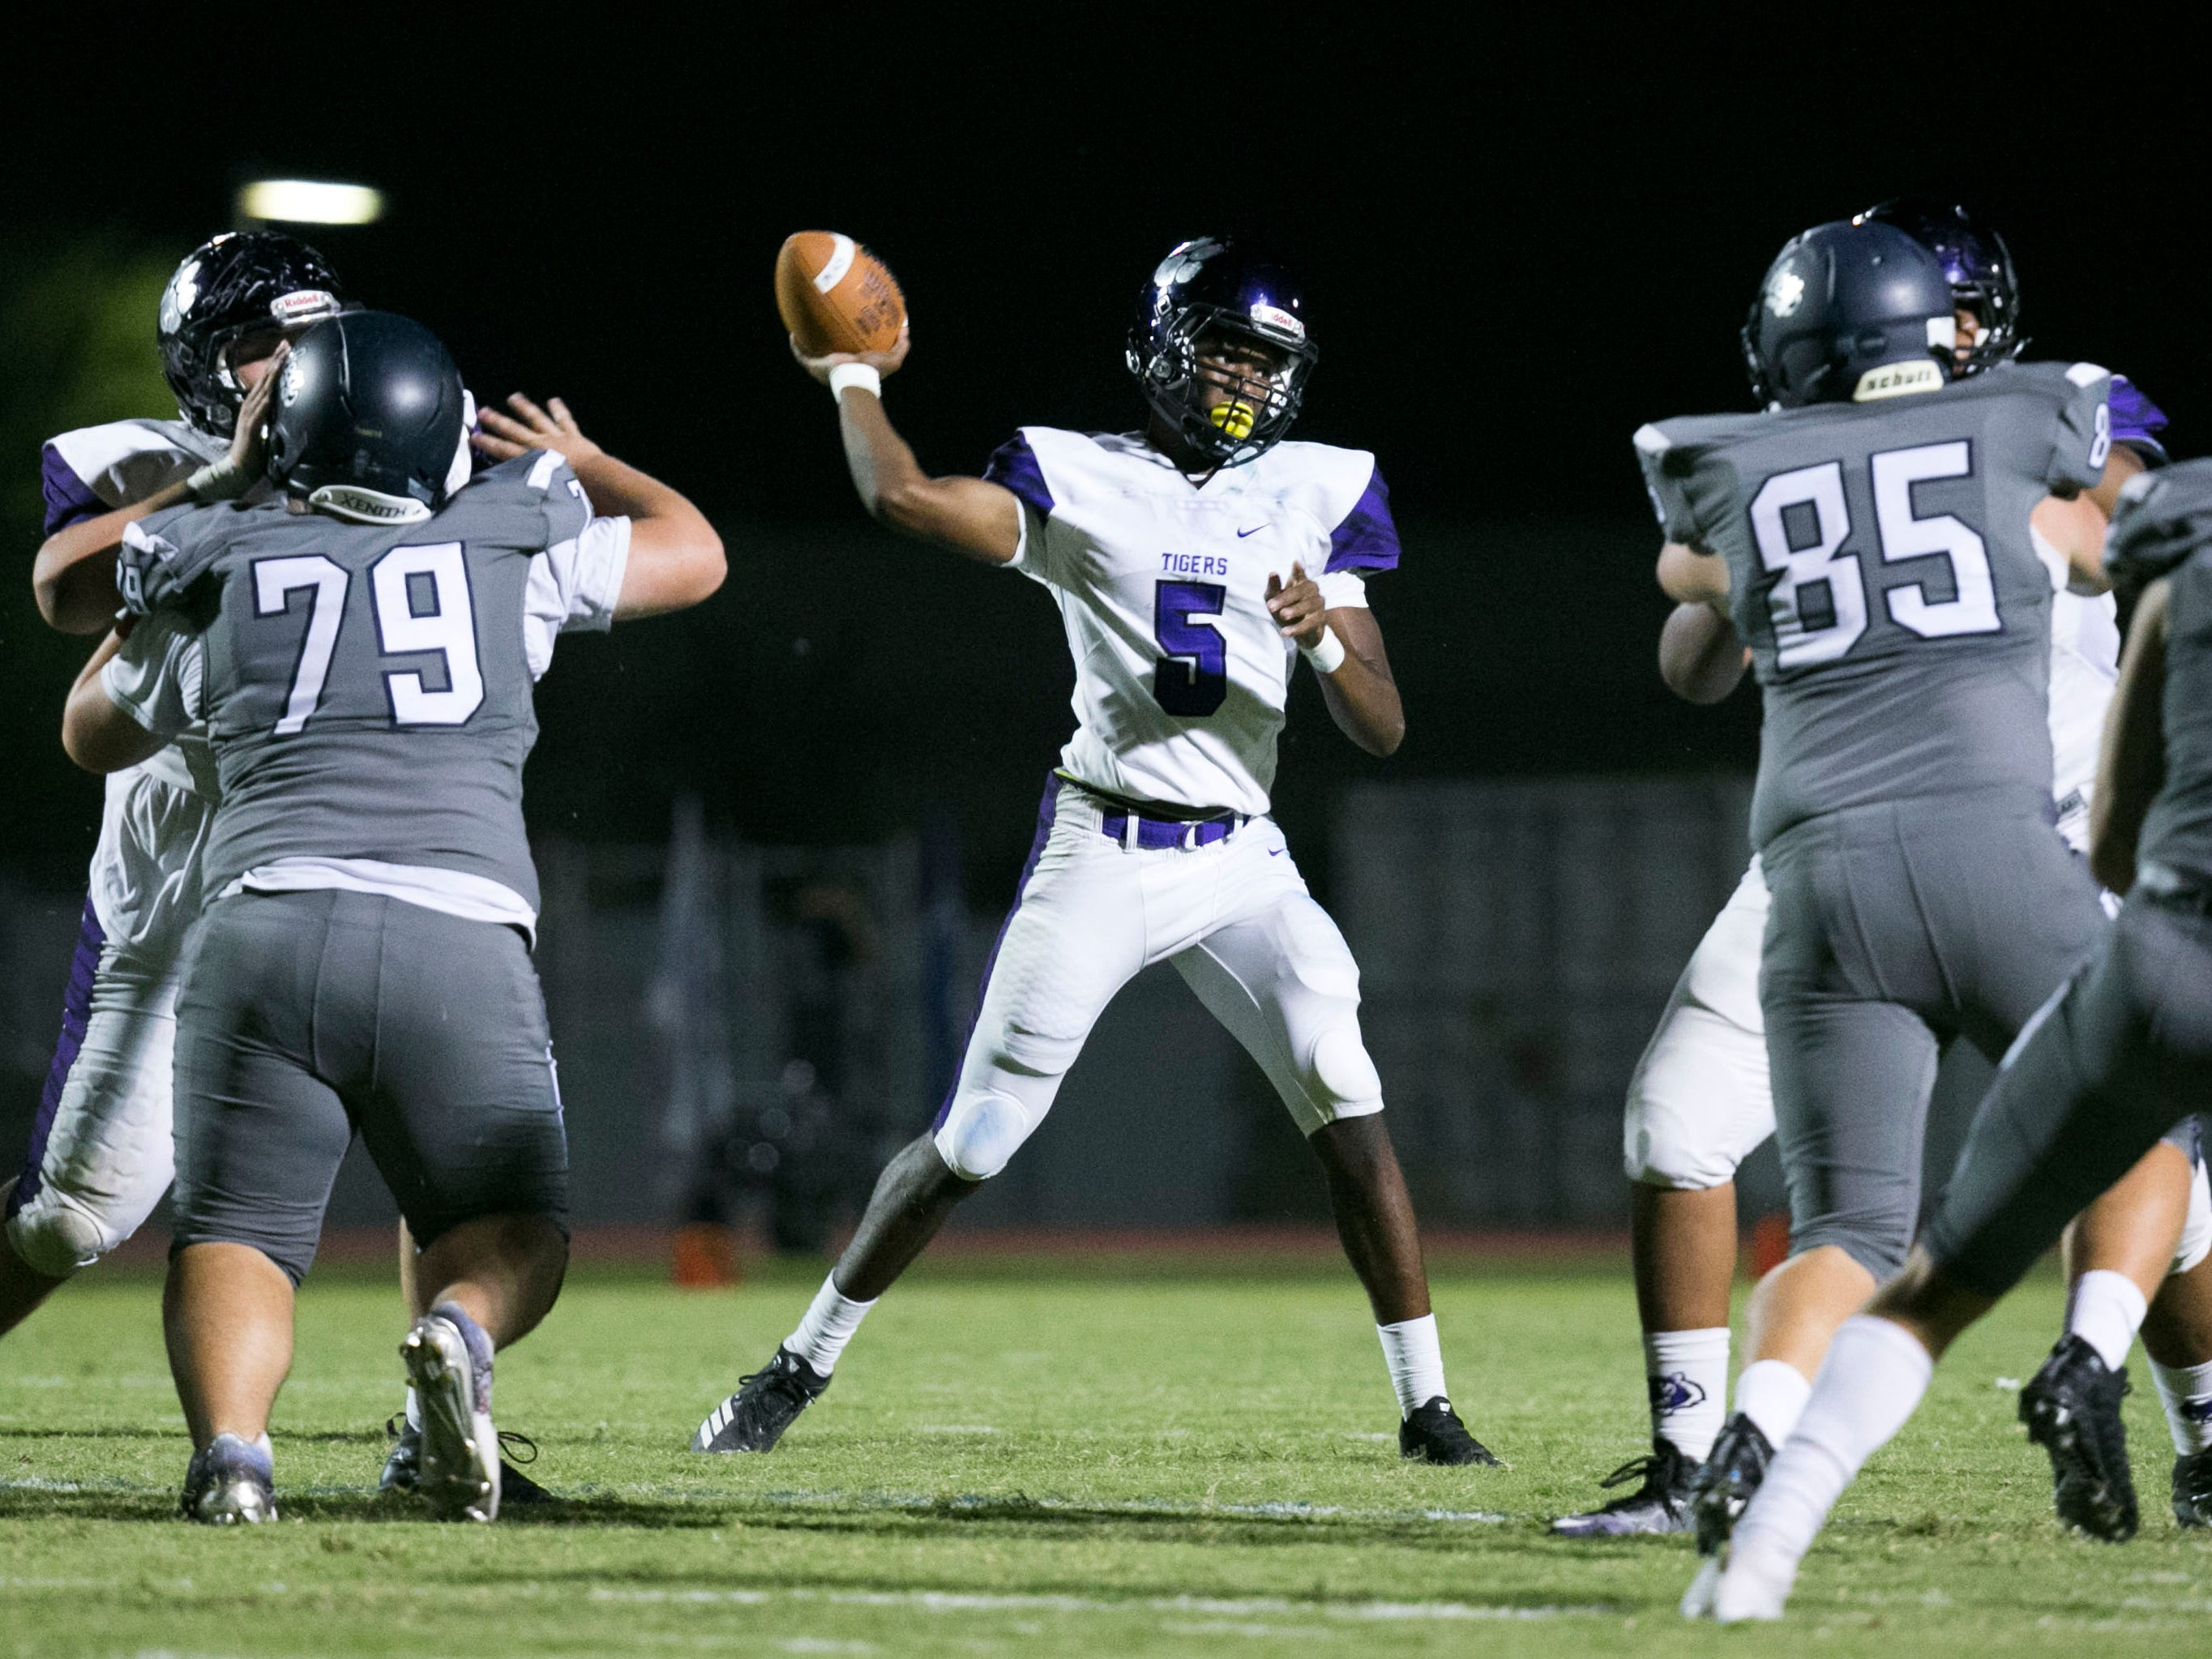 Millennium High quarterback Zareq Brown passes against Higley High during the fourth quarter of the high school football game at Higley High in Gilbert on Friday evening, September 14, 2018.